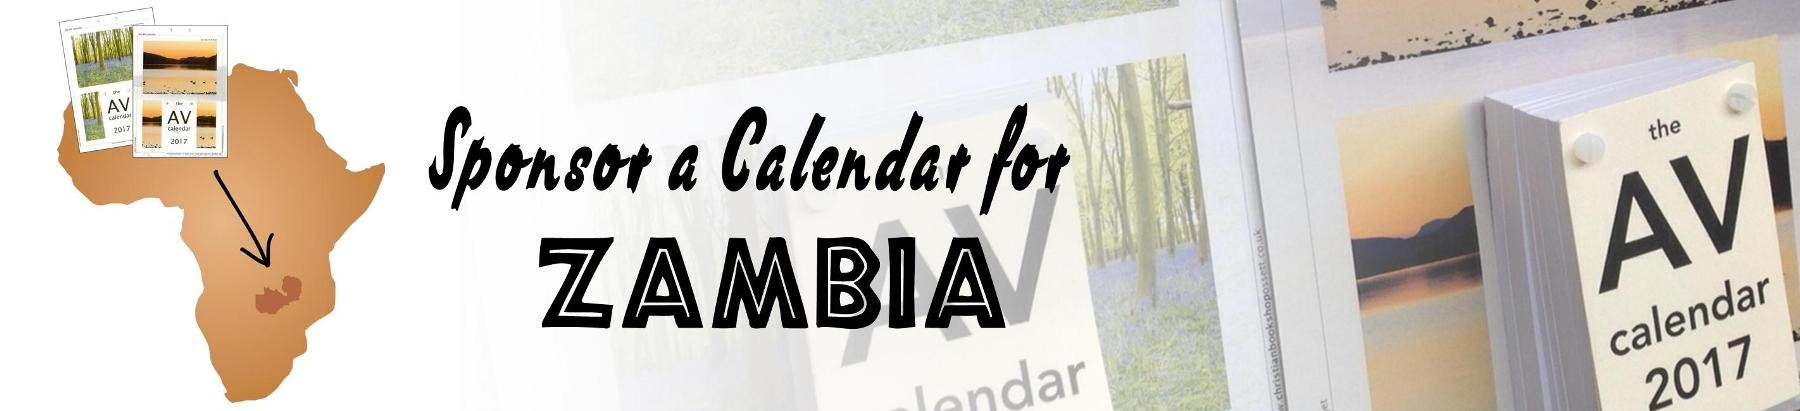 Sponsor a Calendar for Free Distribution in Zambia